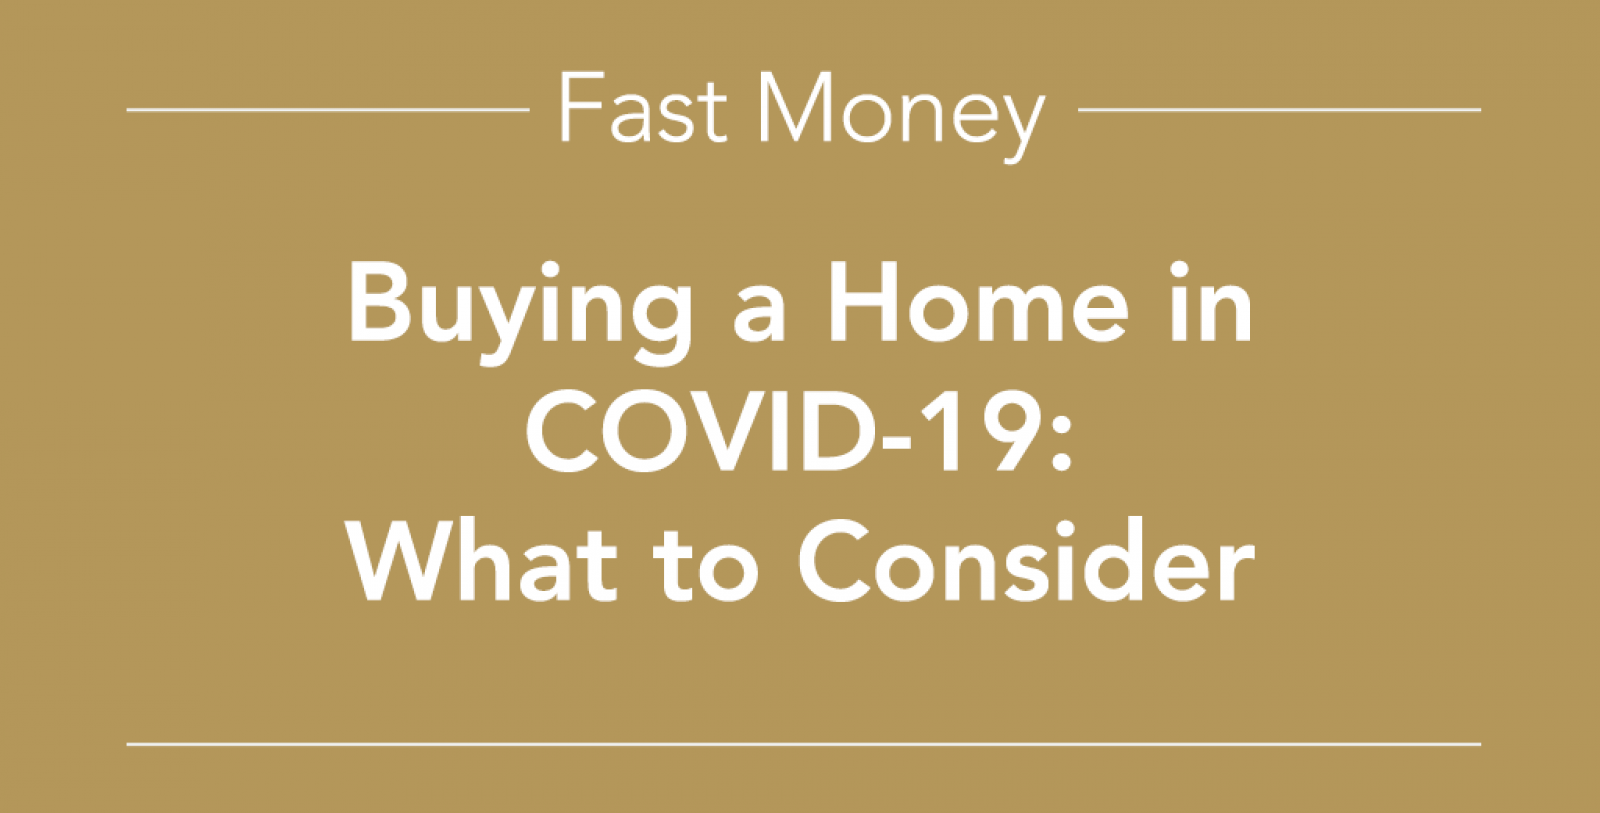 Buying a home in COVID-19